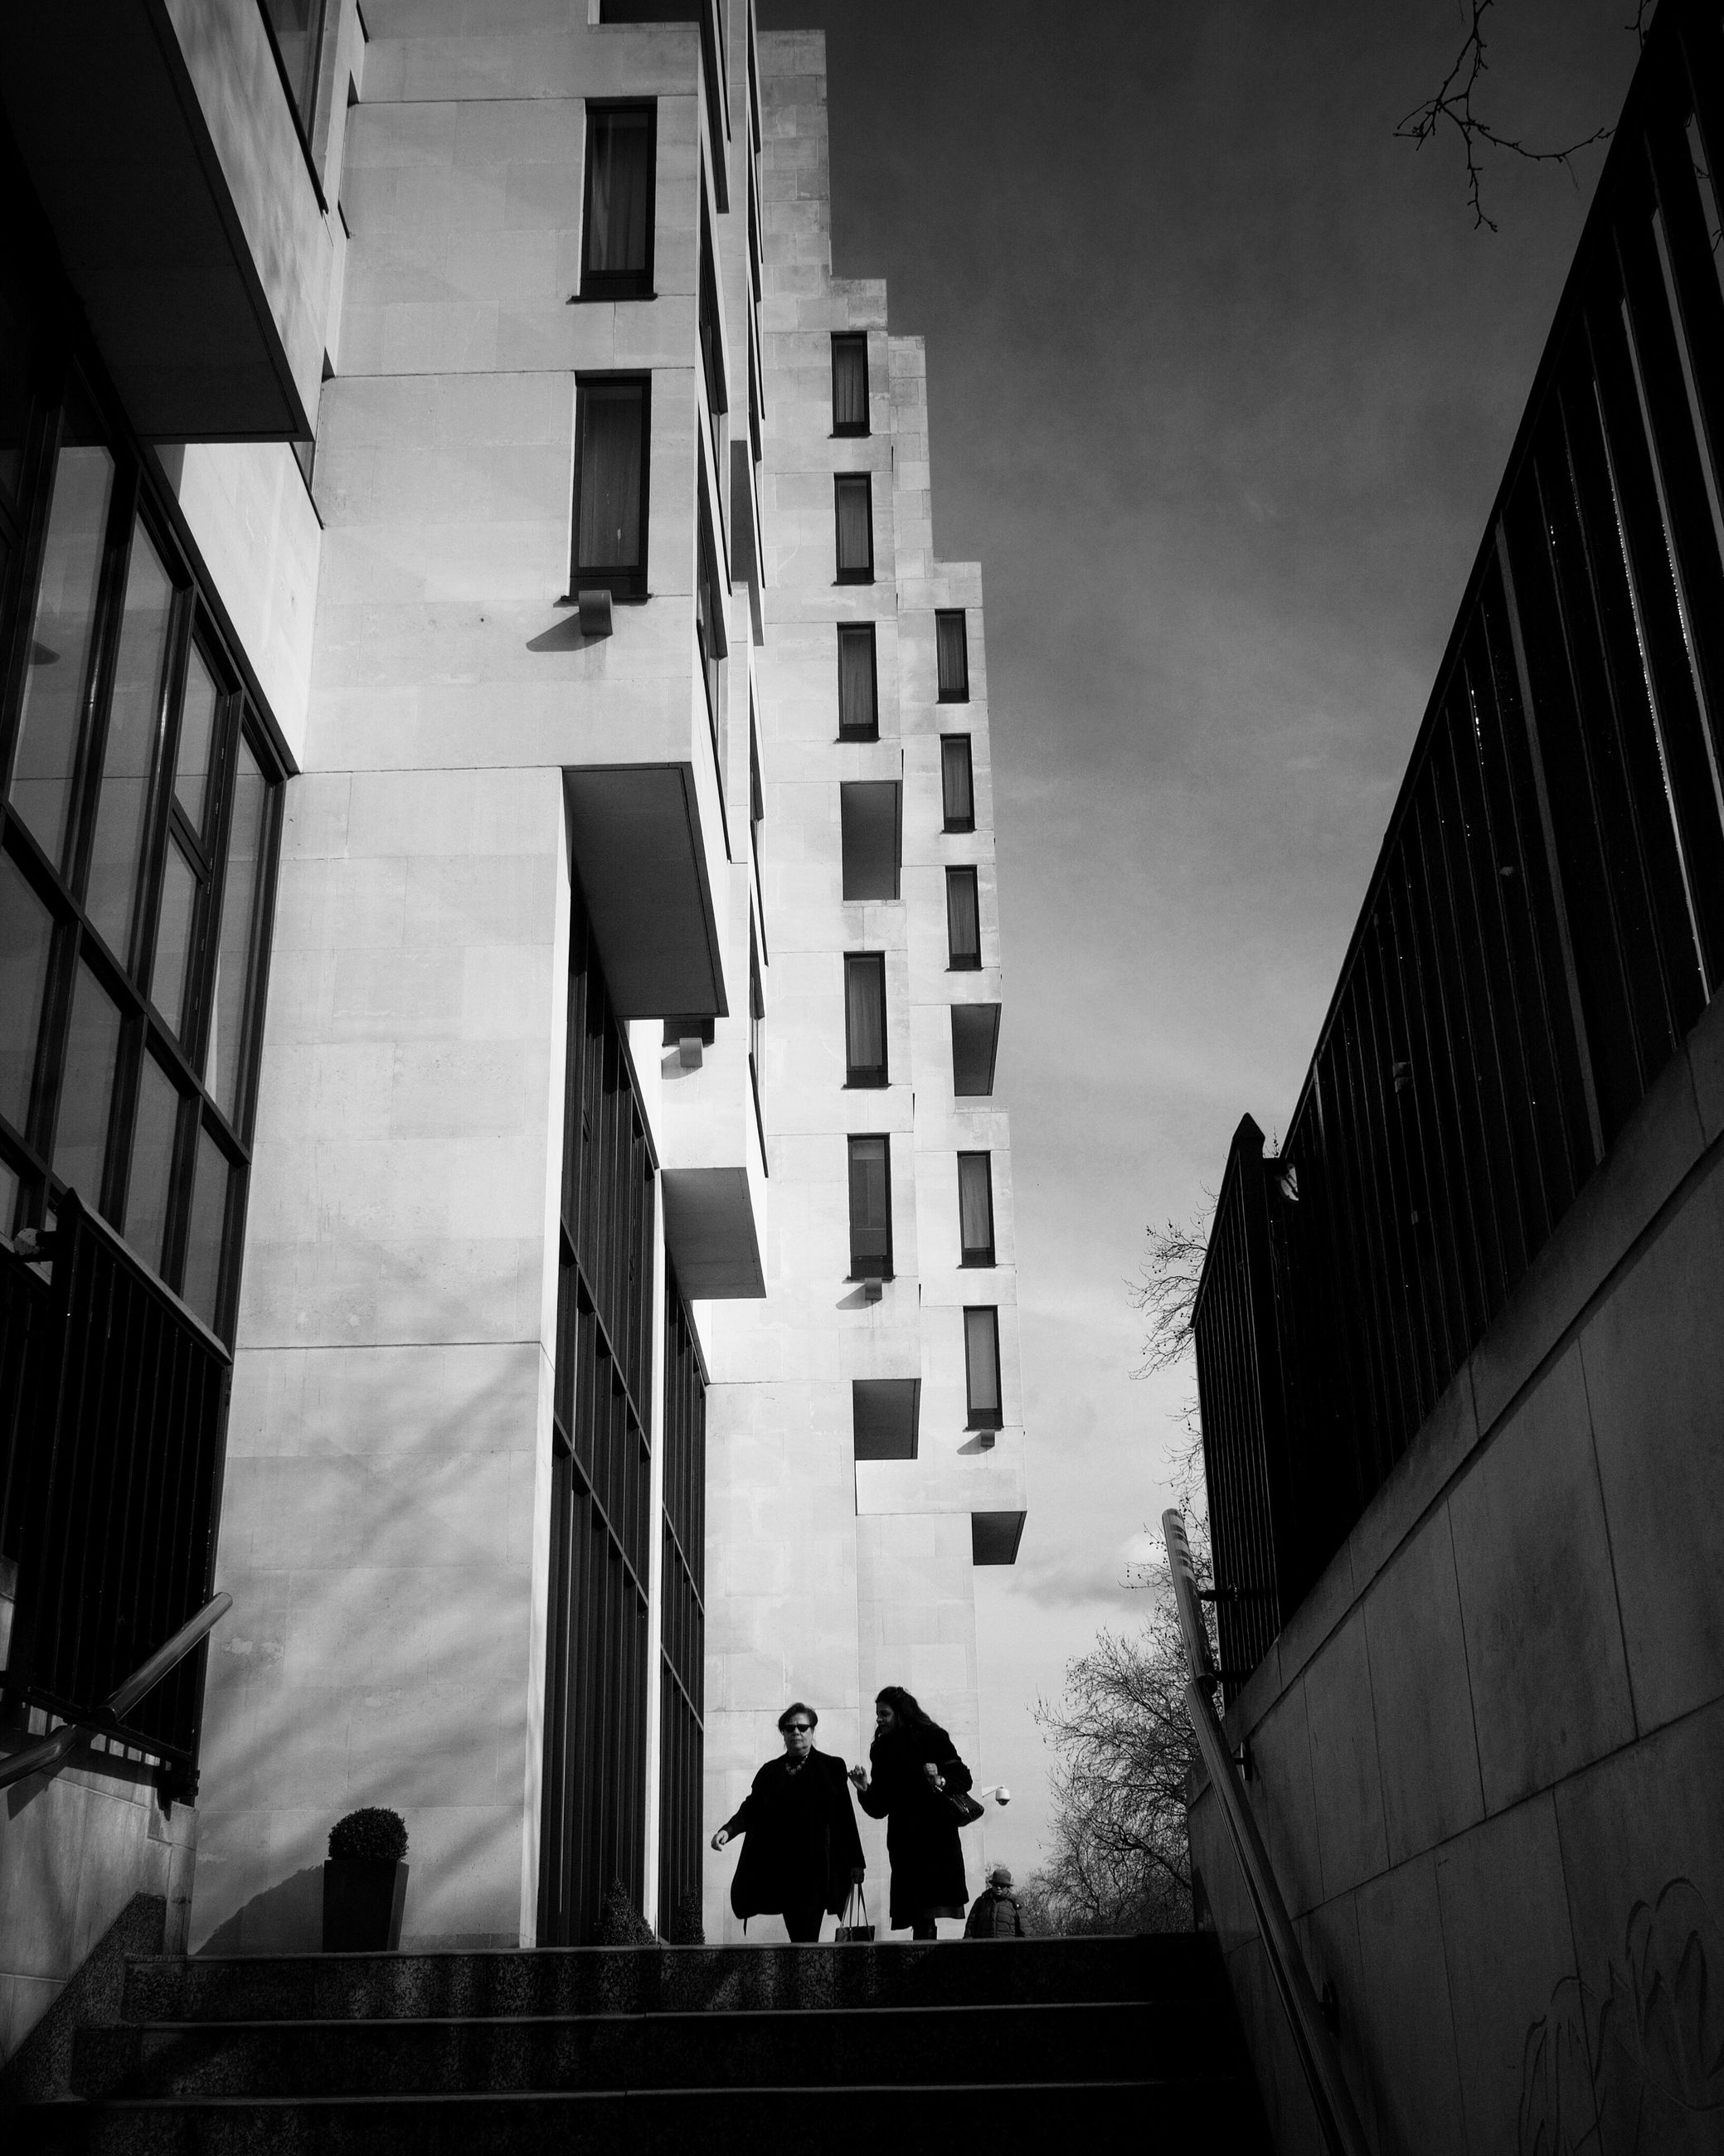 architecture, built structure, building exterior, men, walking, building, city, lifestyles, person, low angle view, full length, city life, steps, rear view, leisure activity, railing, modern, residential building